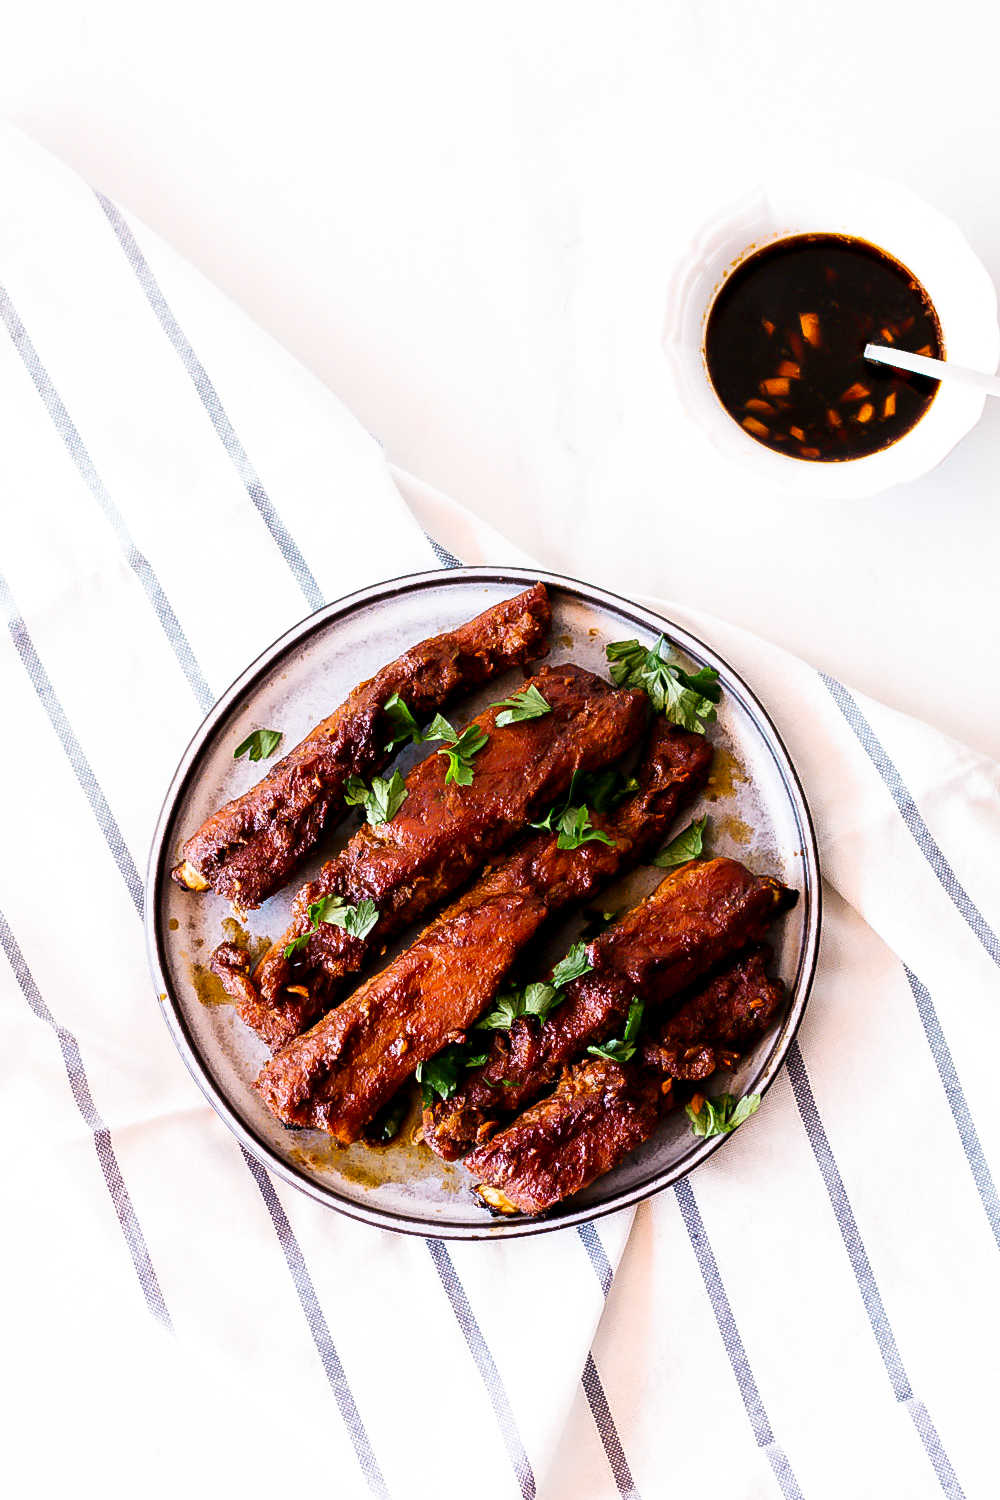 If you're trying to reduce bloating, cooking yourself a high-protein, low-carb dinner, like these oven-baked ribs, can do wonders for your figure! https://www.spotebi.com/recipes/easy-melt-in-your-mouth-oven-baked-ribs/